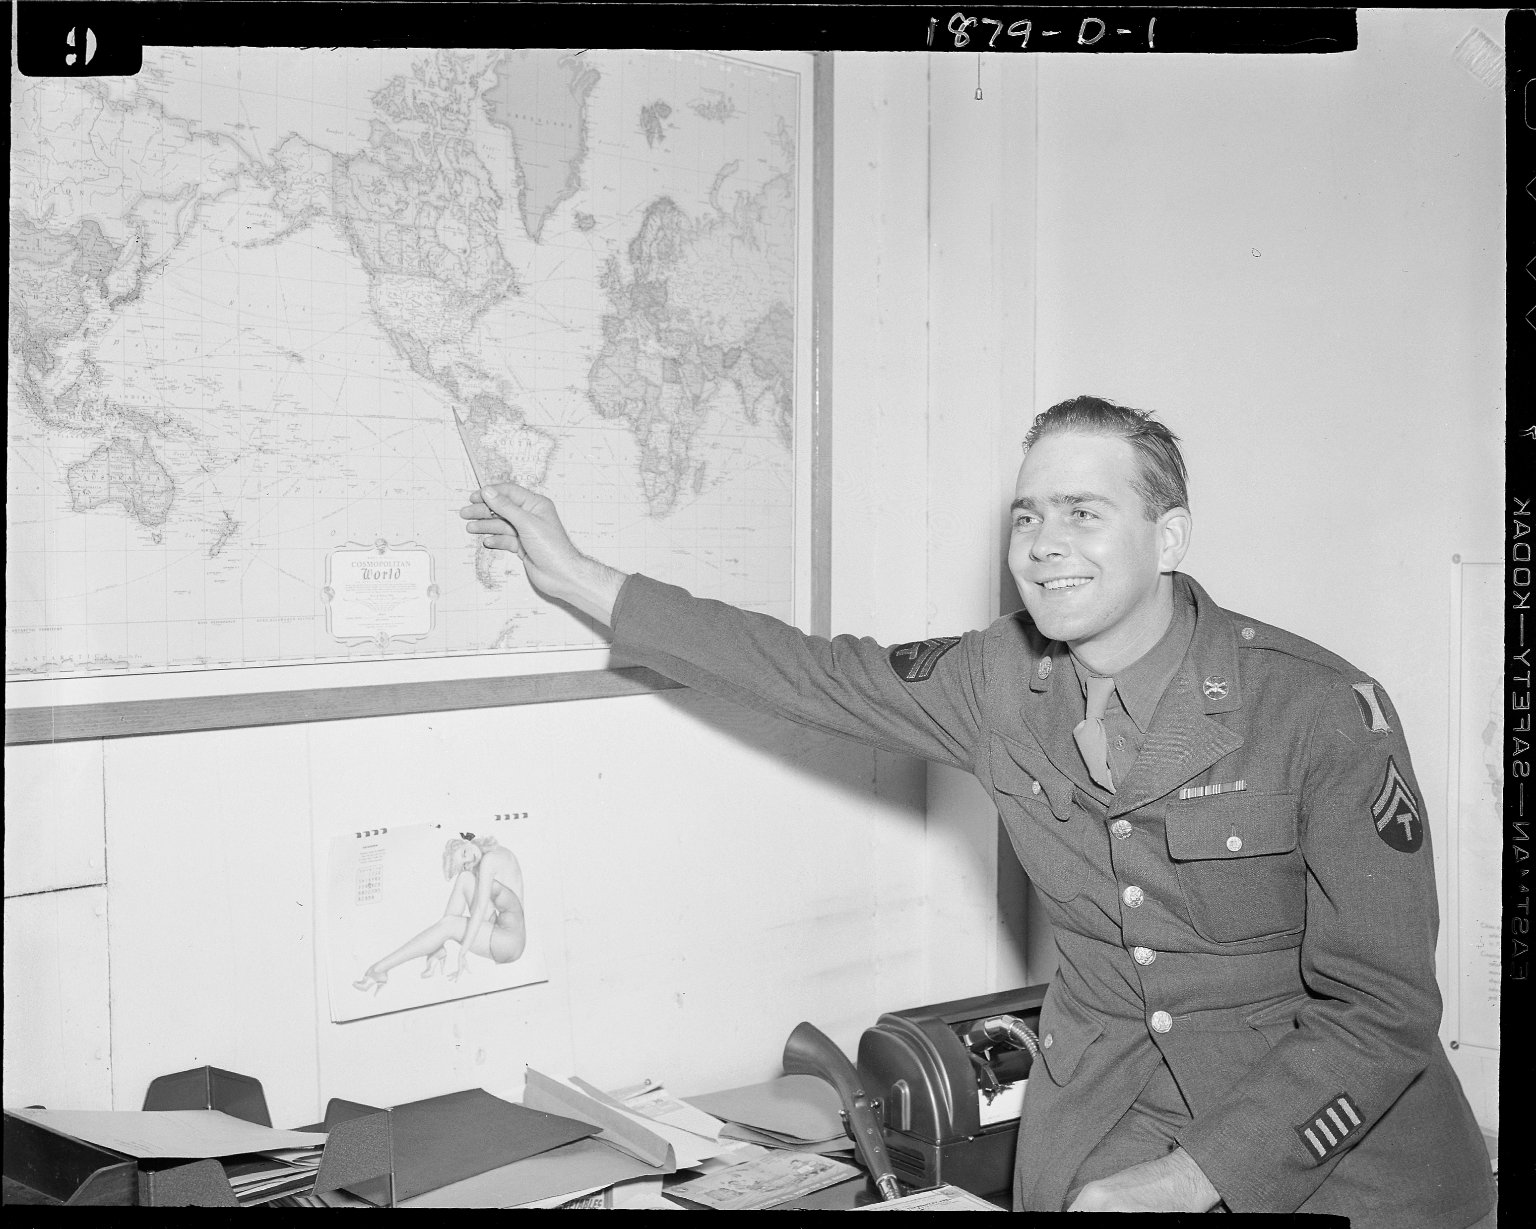 Sutherland Paper Company promotion with army technician pointing to map